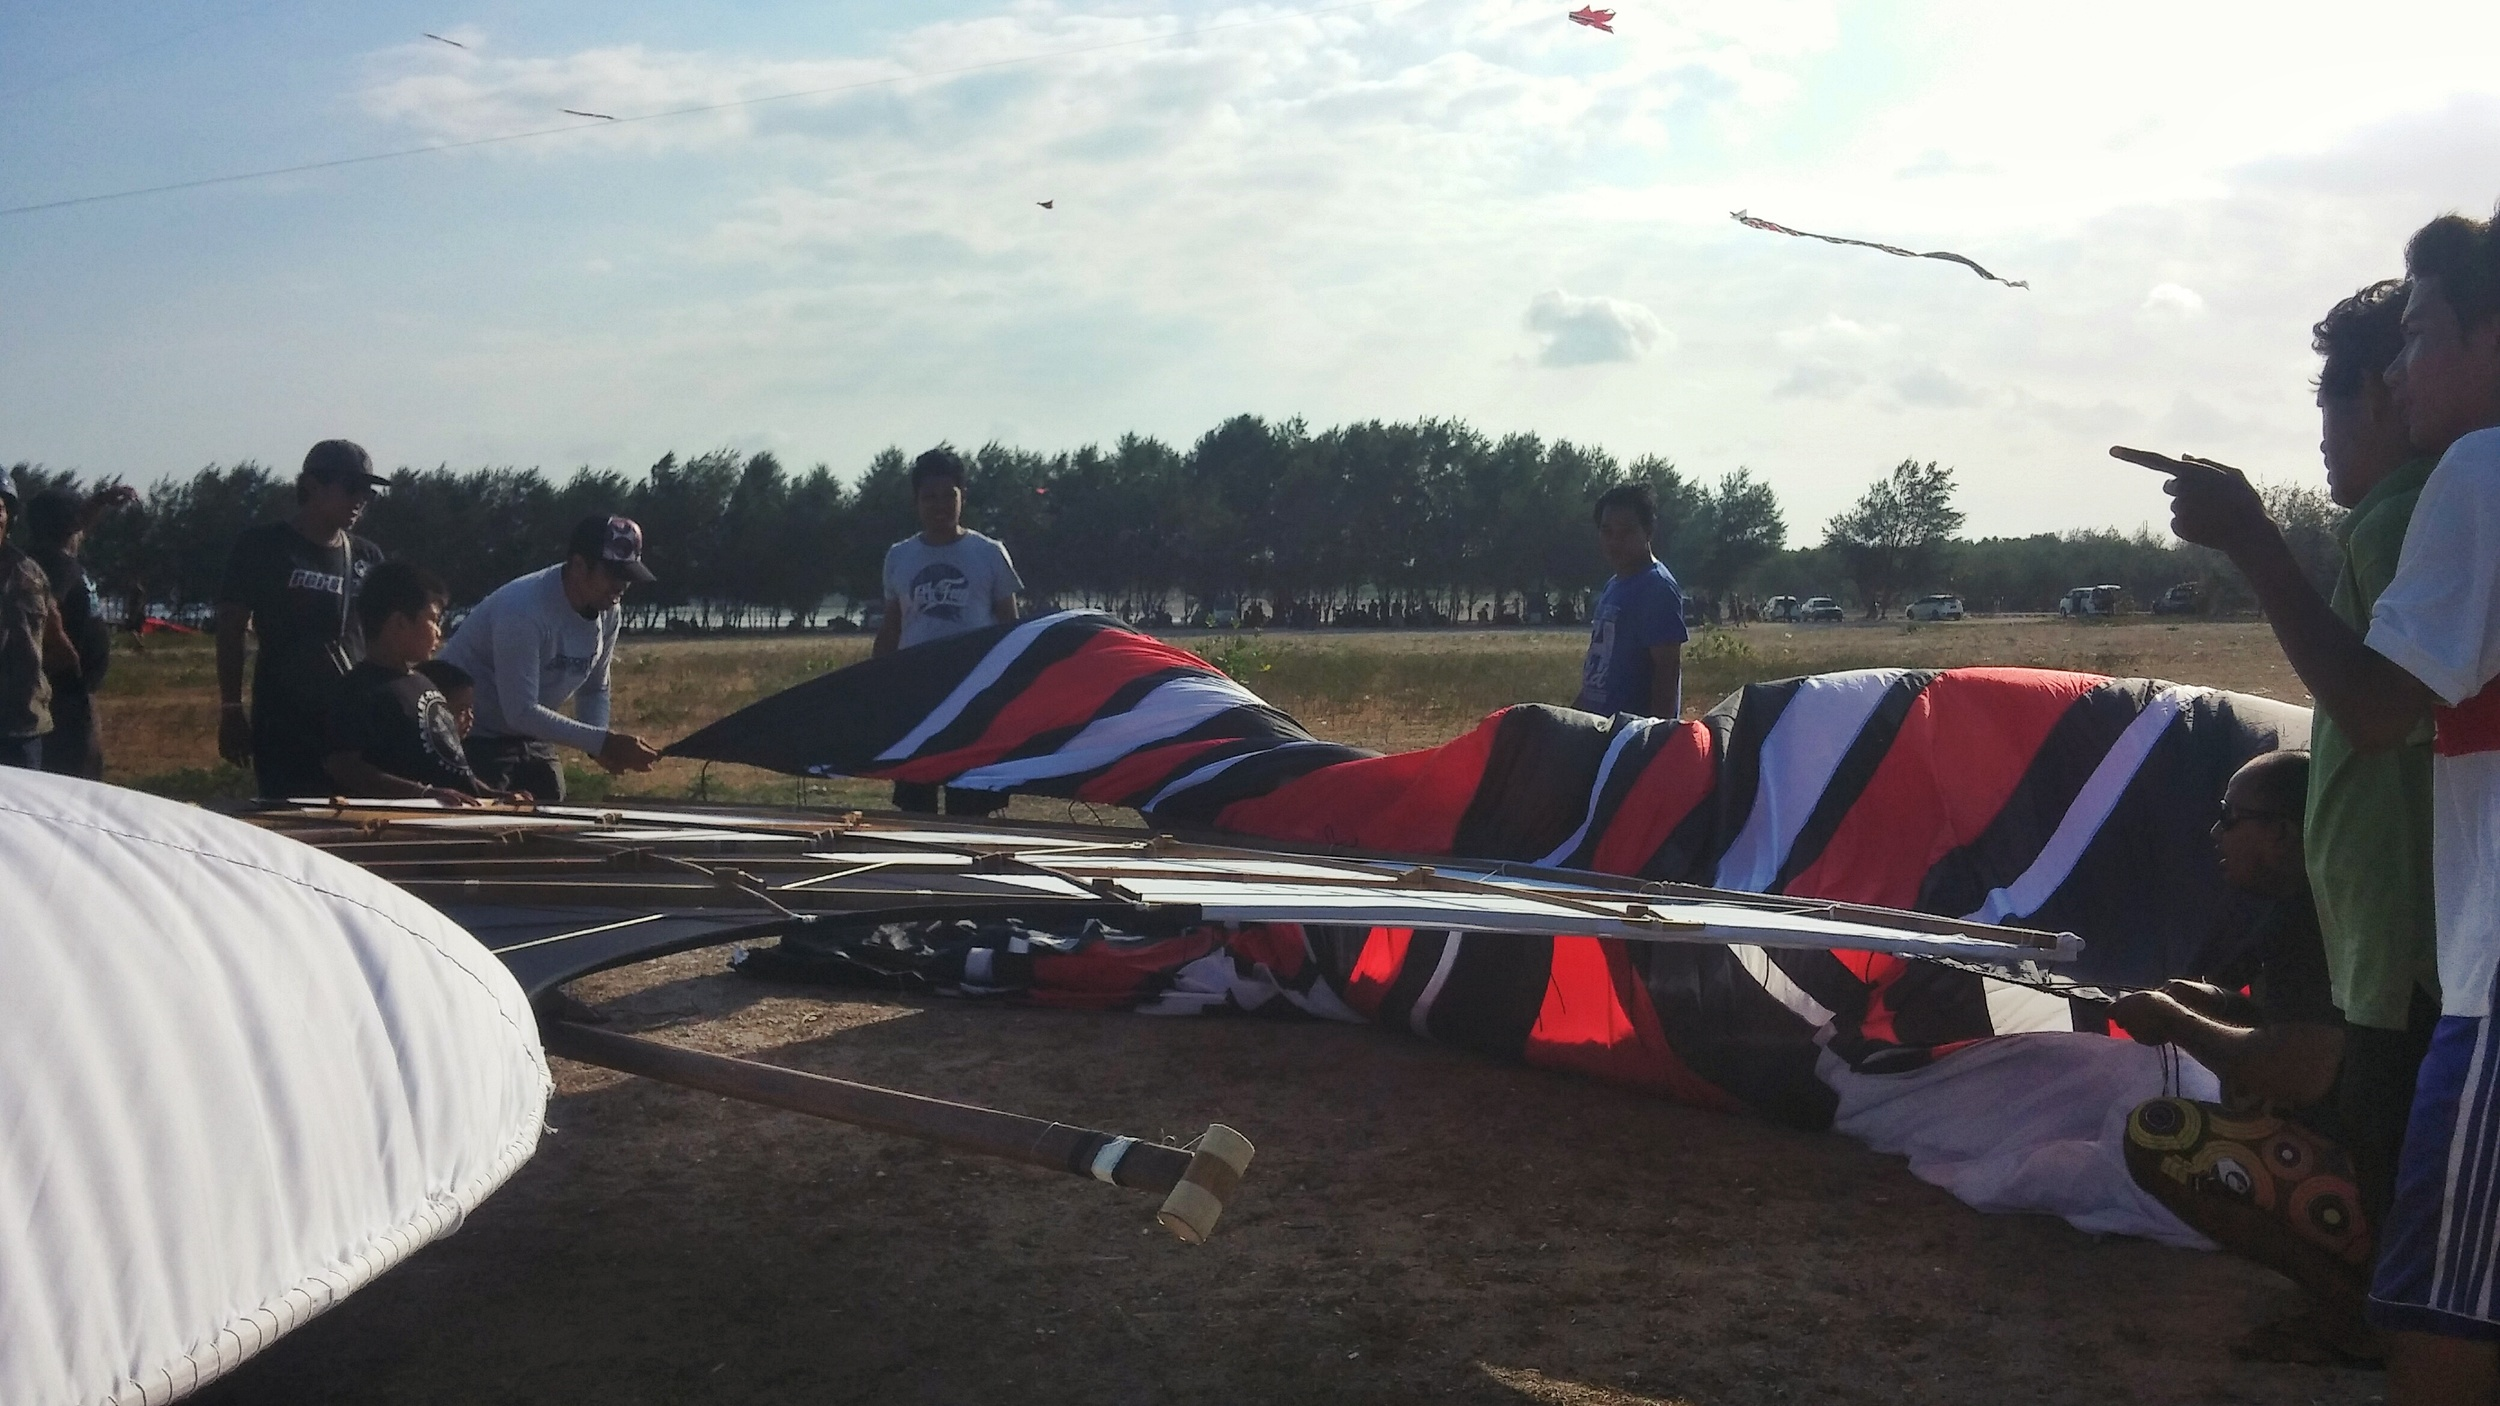 The team starts tying on the tail of the kite.